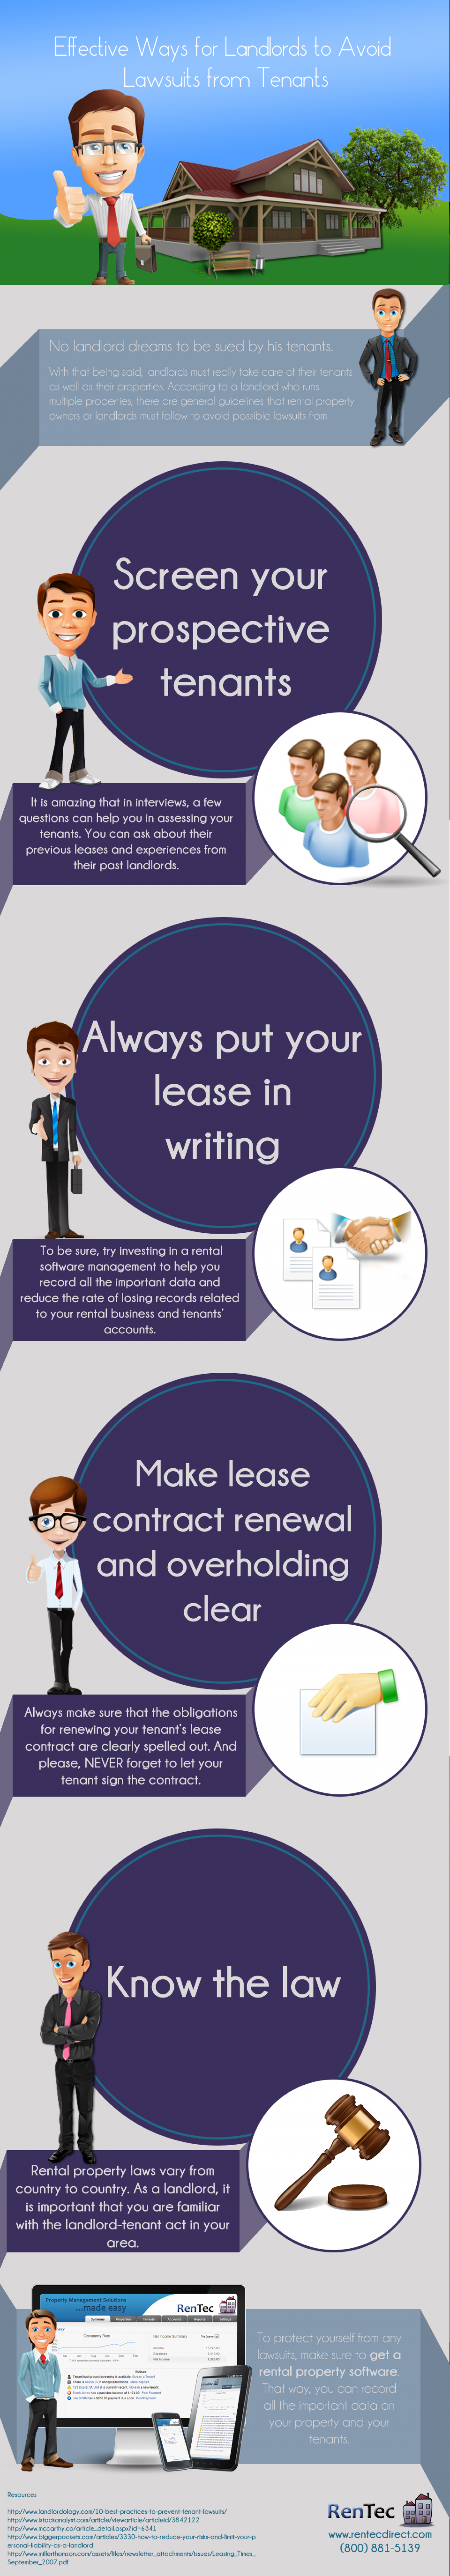 Effective Ways for Landlords to Avoid Lawsuits from Tenants Infographic